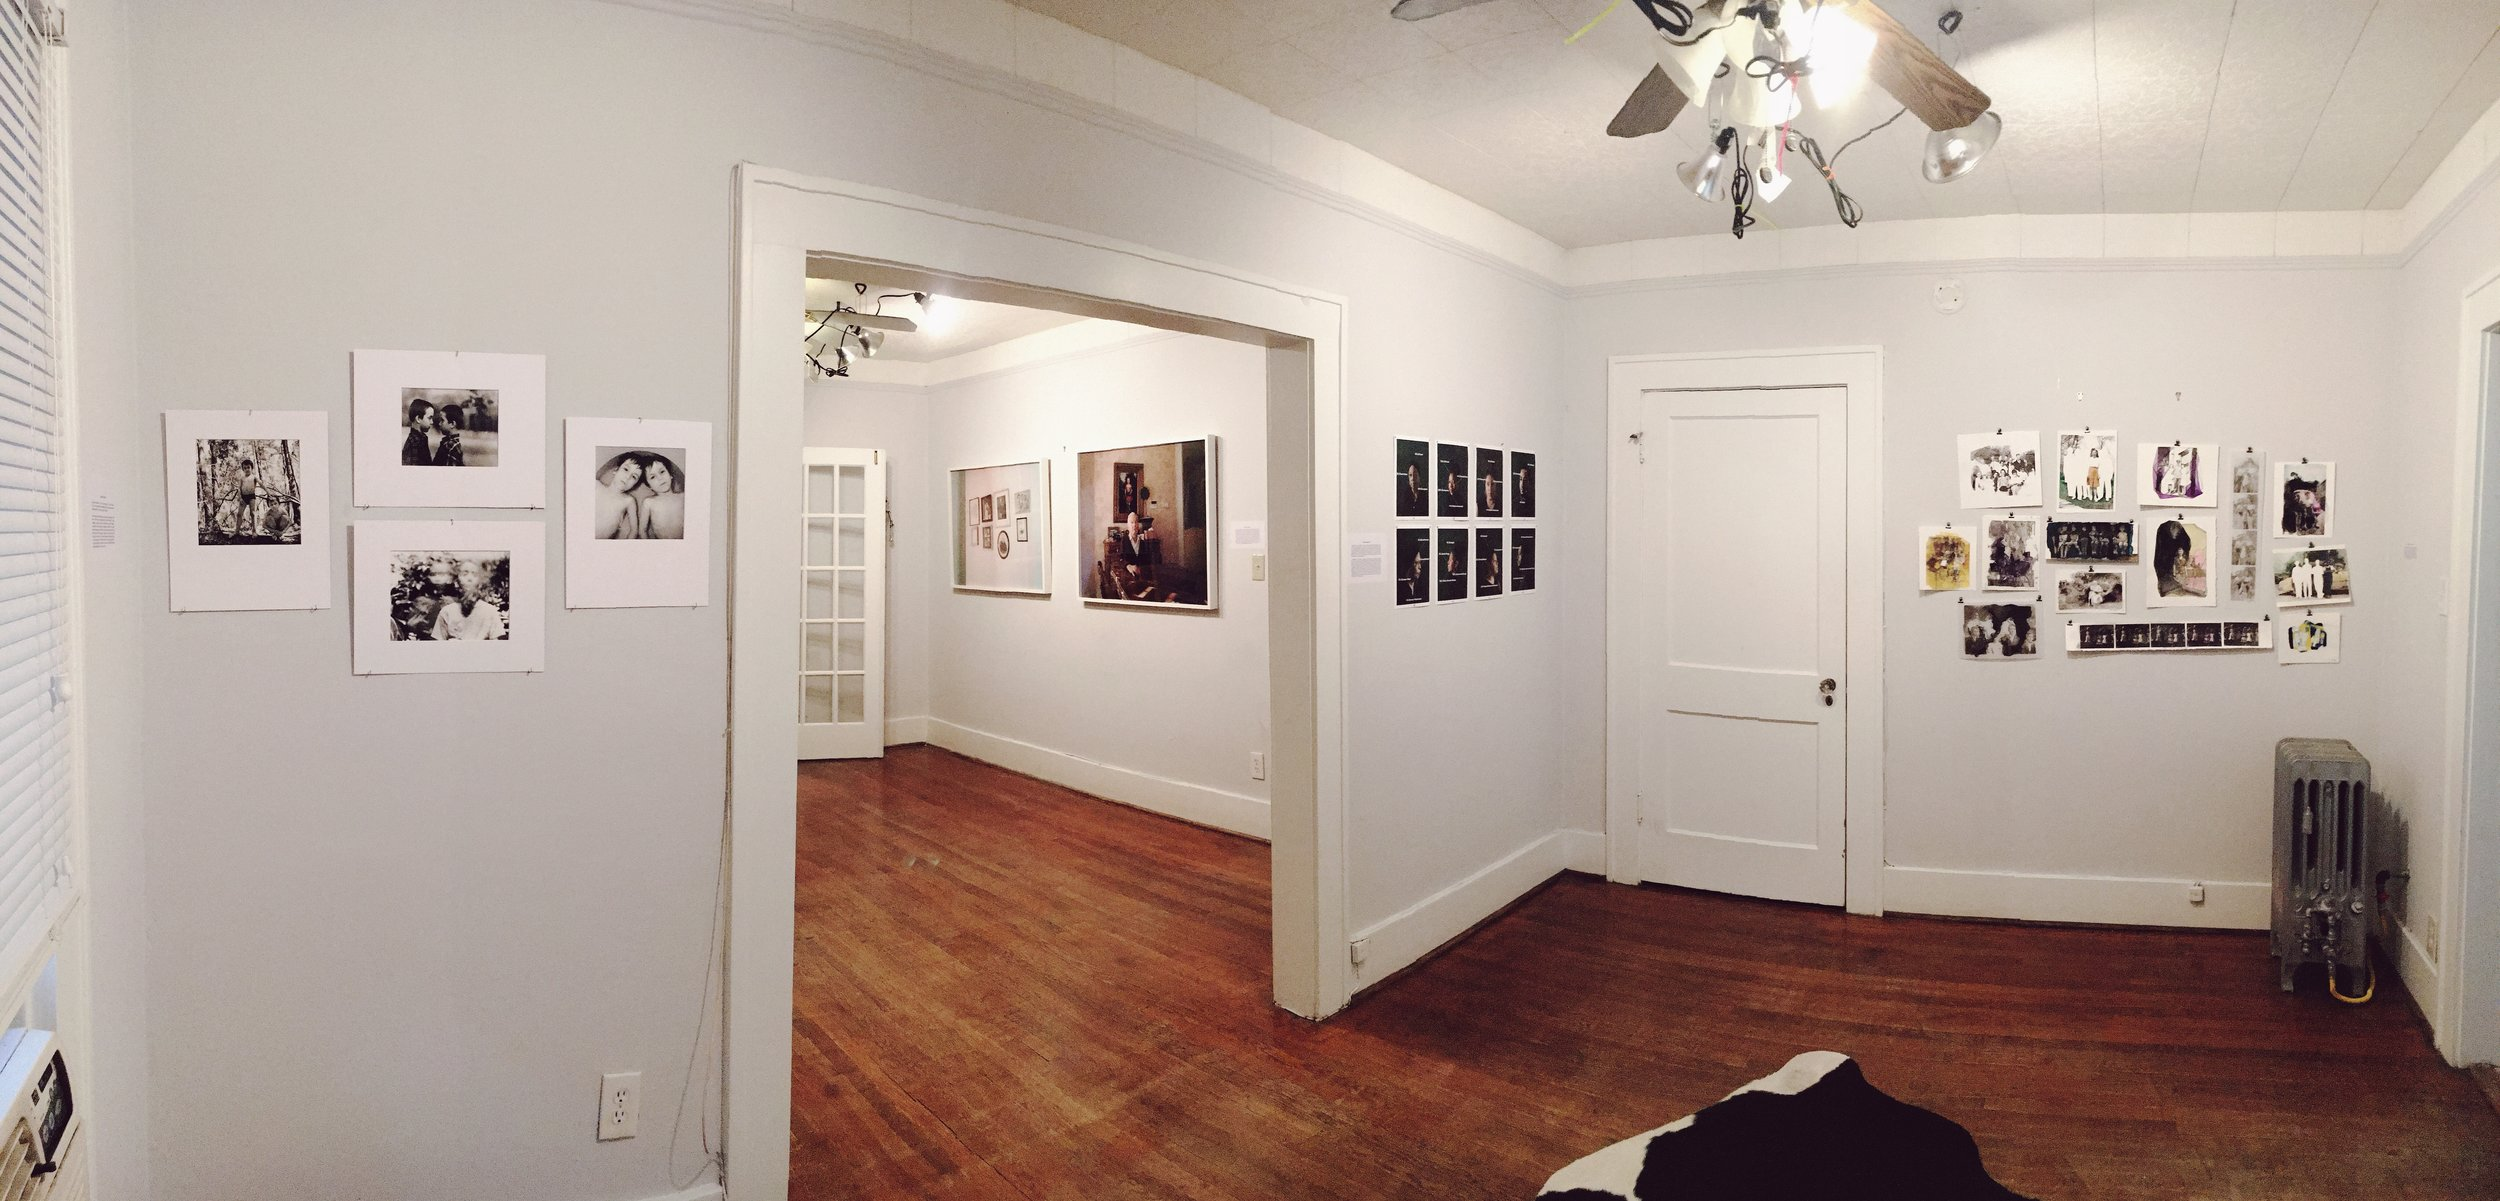 Installation image from FLATS Presents, Fam. Looking through a doorway of a home with photographs in a gallery arrangement on white walls. Artists Clifton Barker, Emilee Cooney, Brenda Edith Franco, Michael O'Brien, Meredith Richey, and Jamie Robertson.